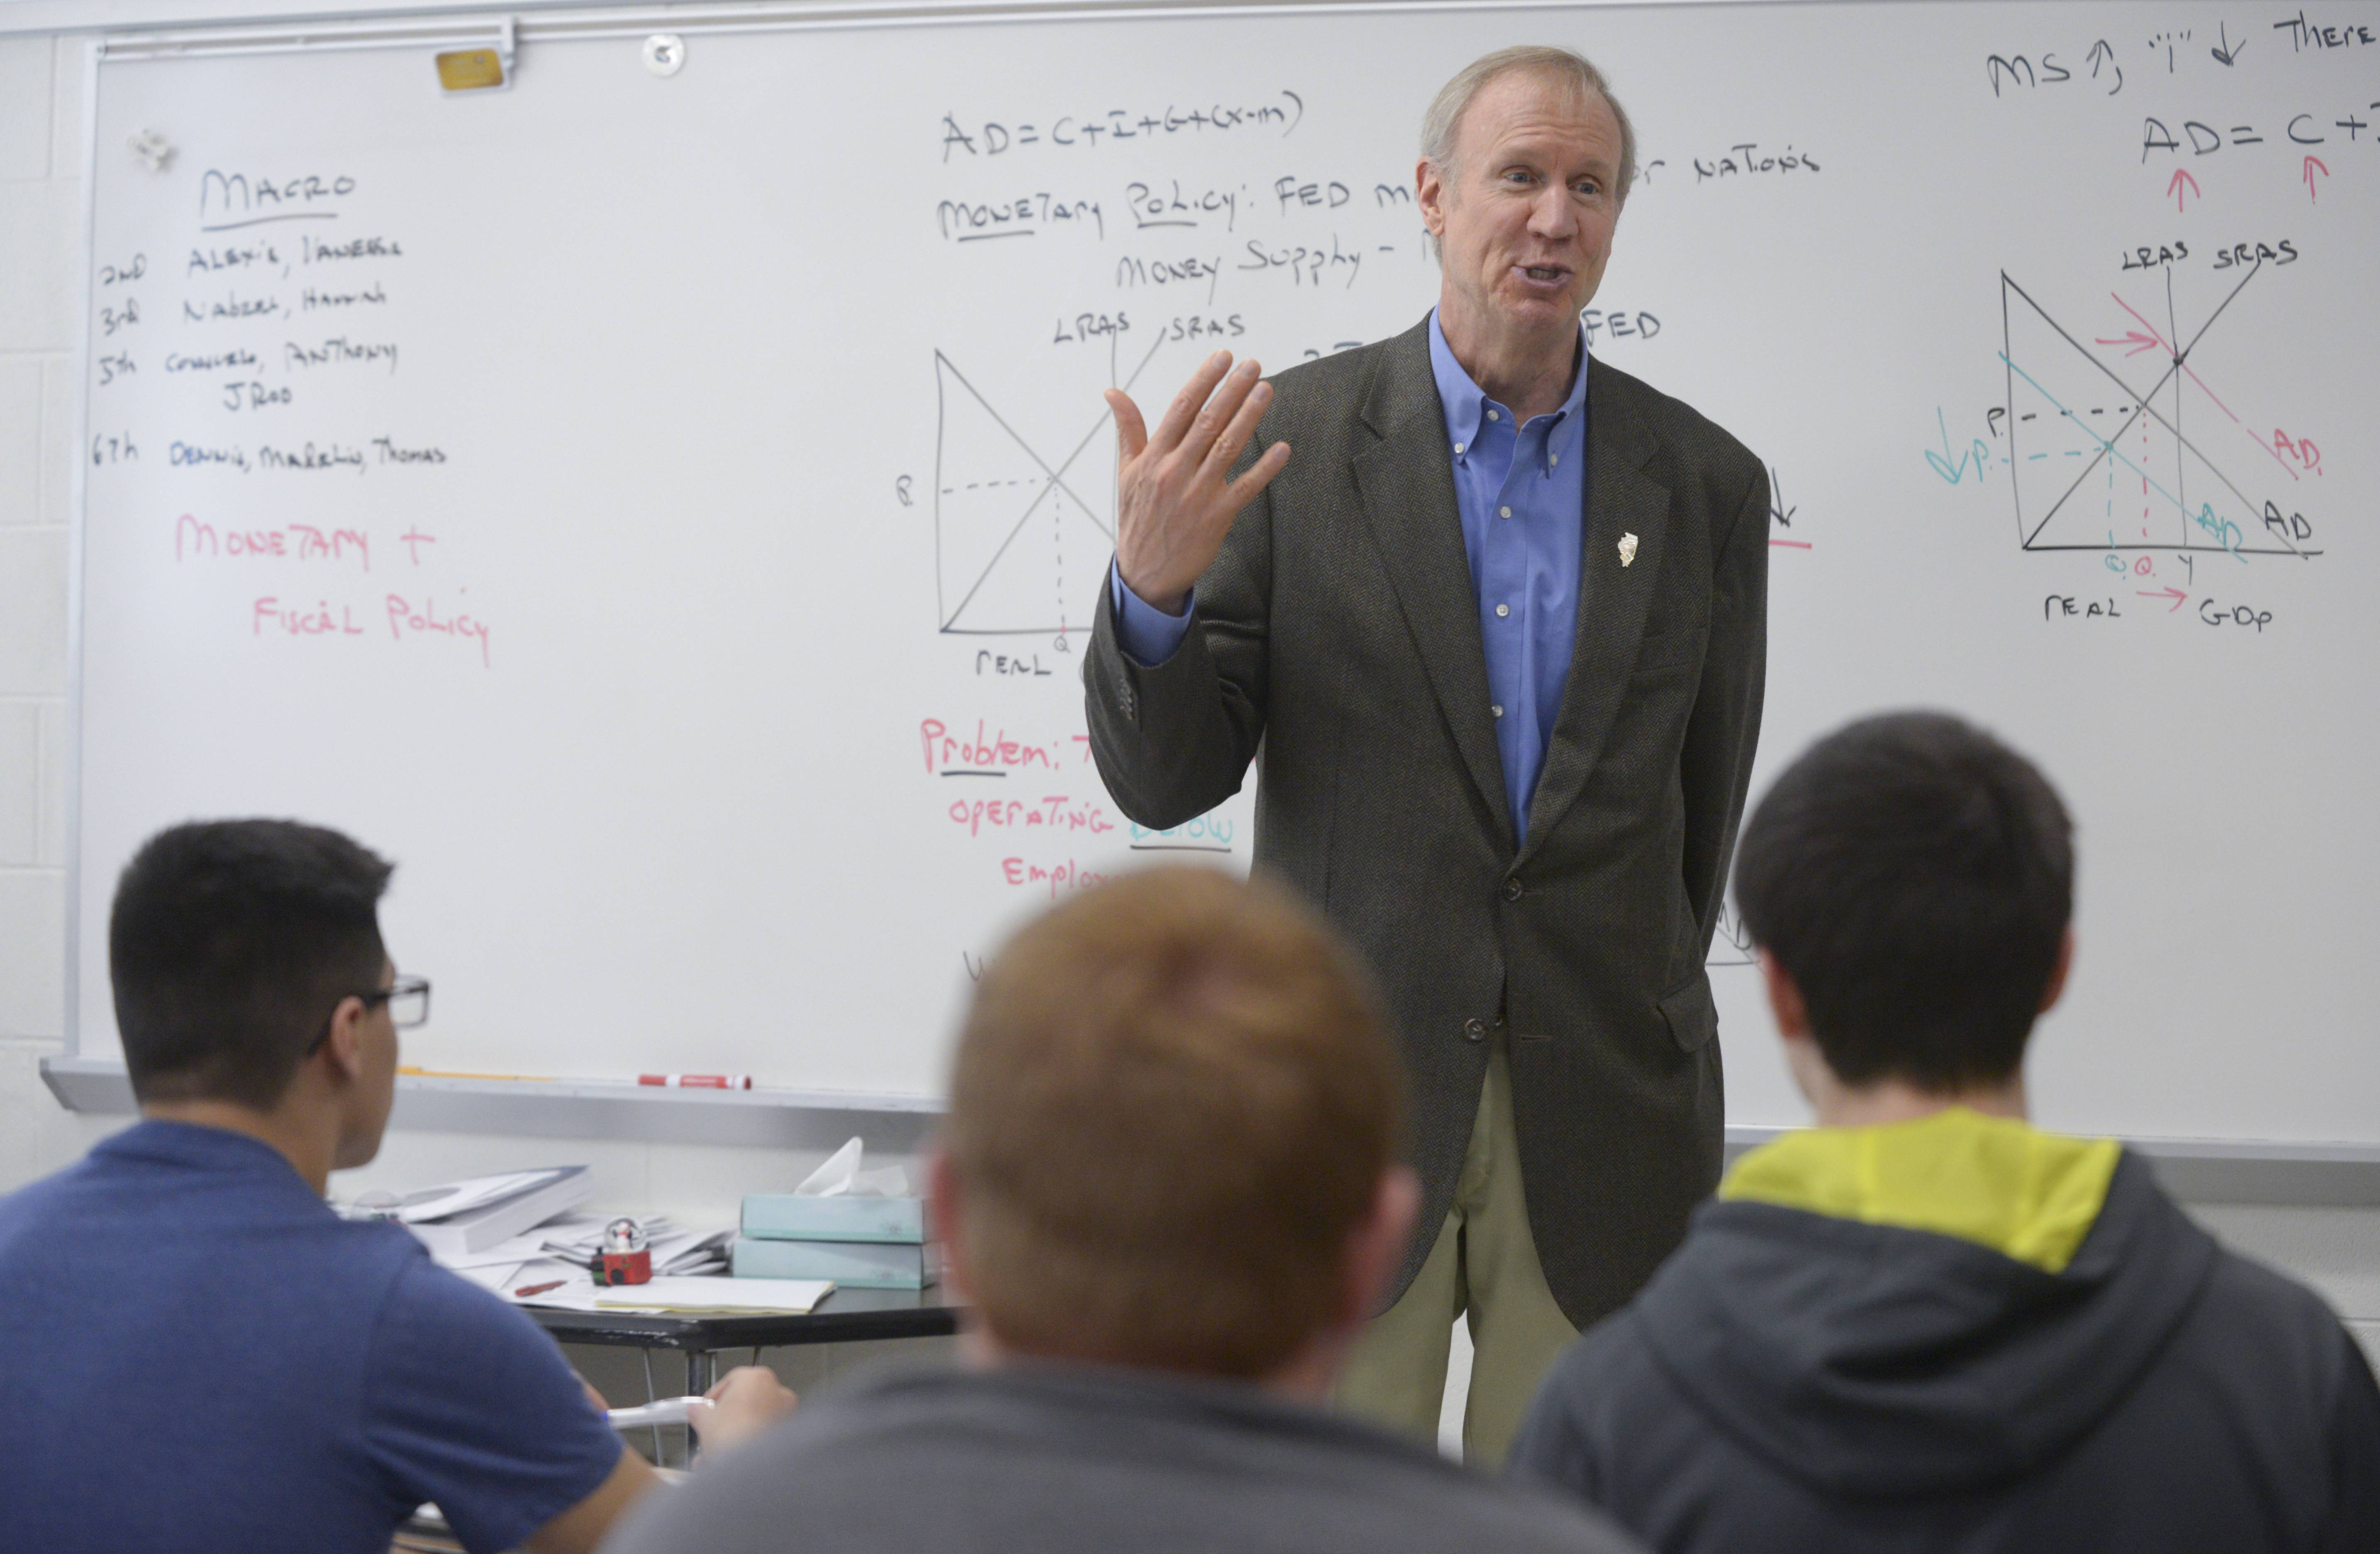 Gov. Bruce Rauner visits an economics class during his visit to Addison Trail High School while on his Illinois Turnaround tour.